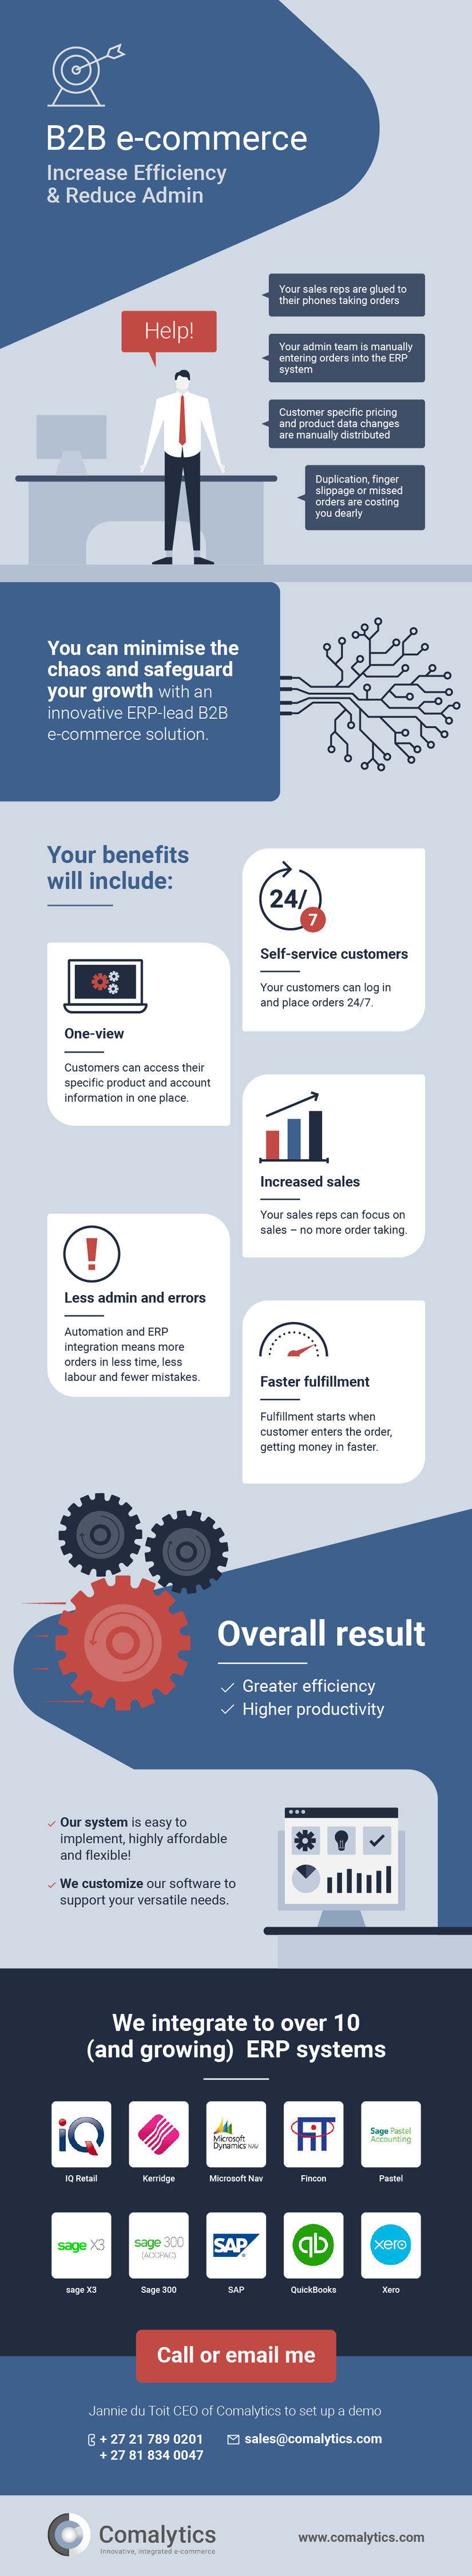 This infographic explains how implementing a B2b e-commerce system increases efficiency and reduces admin in your sales process